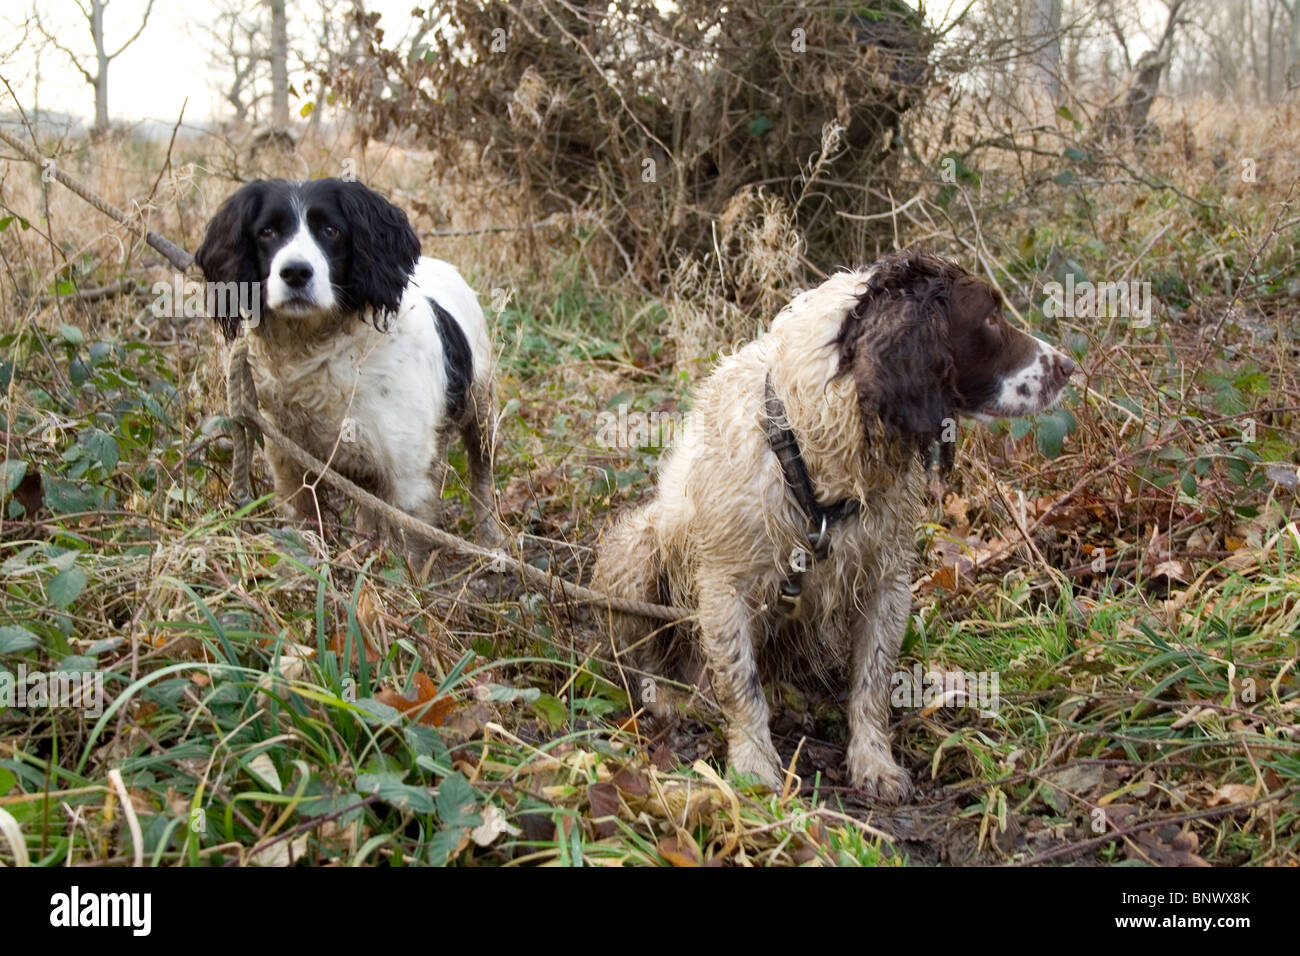 Two gun dogs waiting in the woods. - Stock Image